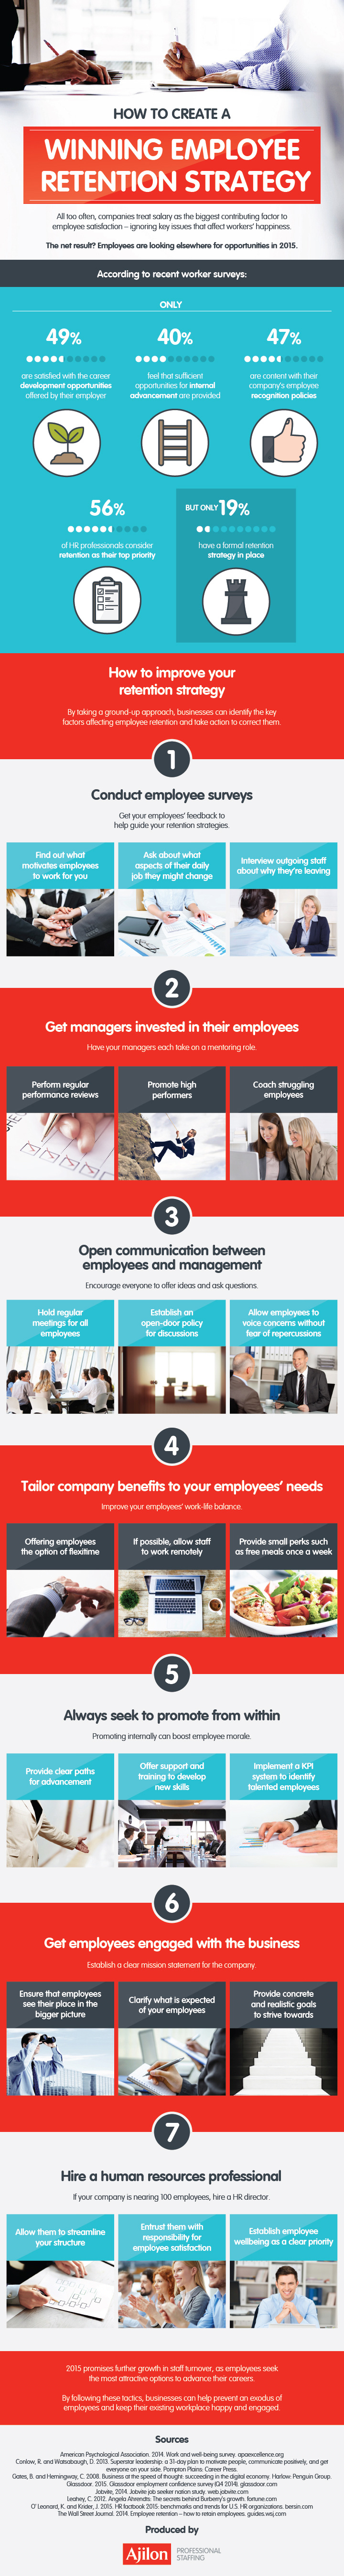 How to Create a Winning Employee Retention Strategy